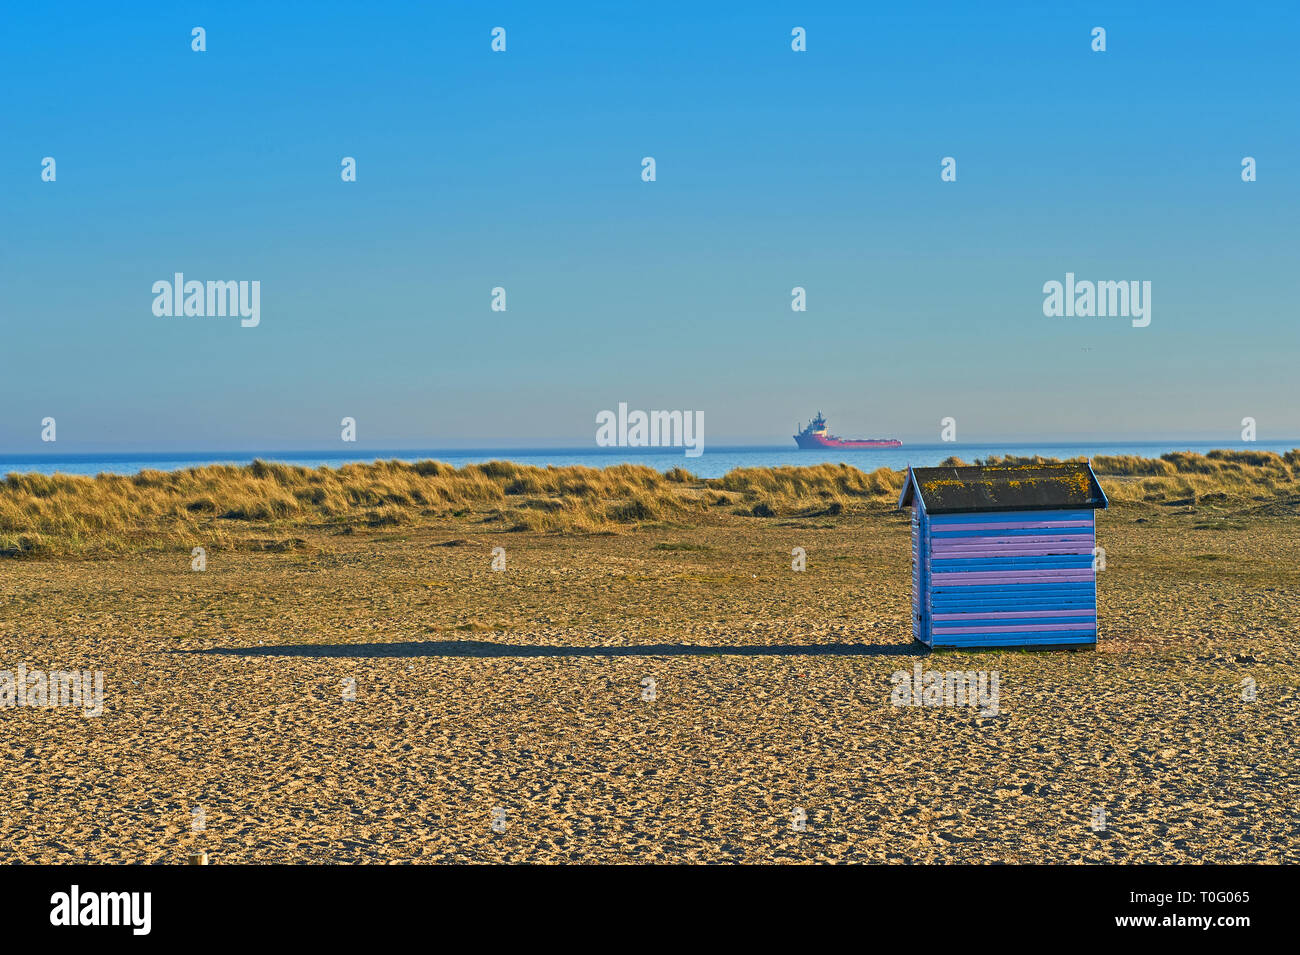 Traditional seaside beach huts in blue and pink stripes on the shingle coastal strip in Great Yarmouth, Norfolk Stock Photo